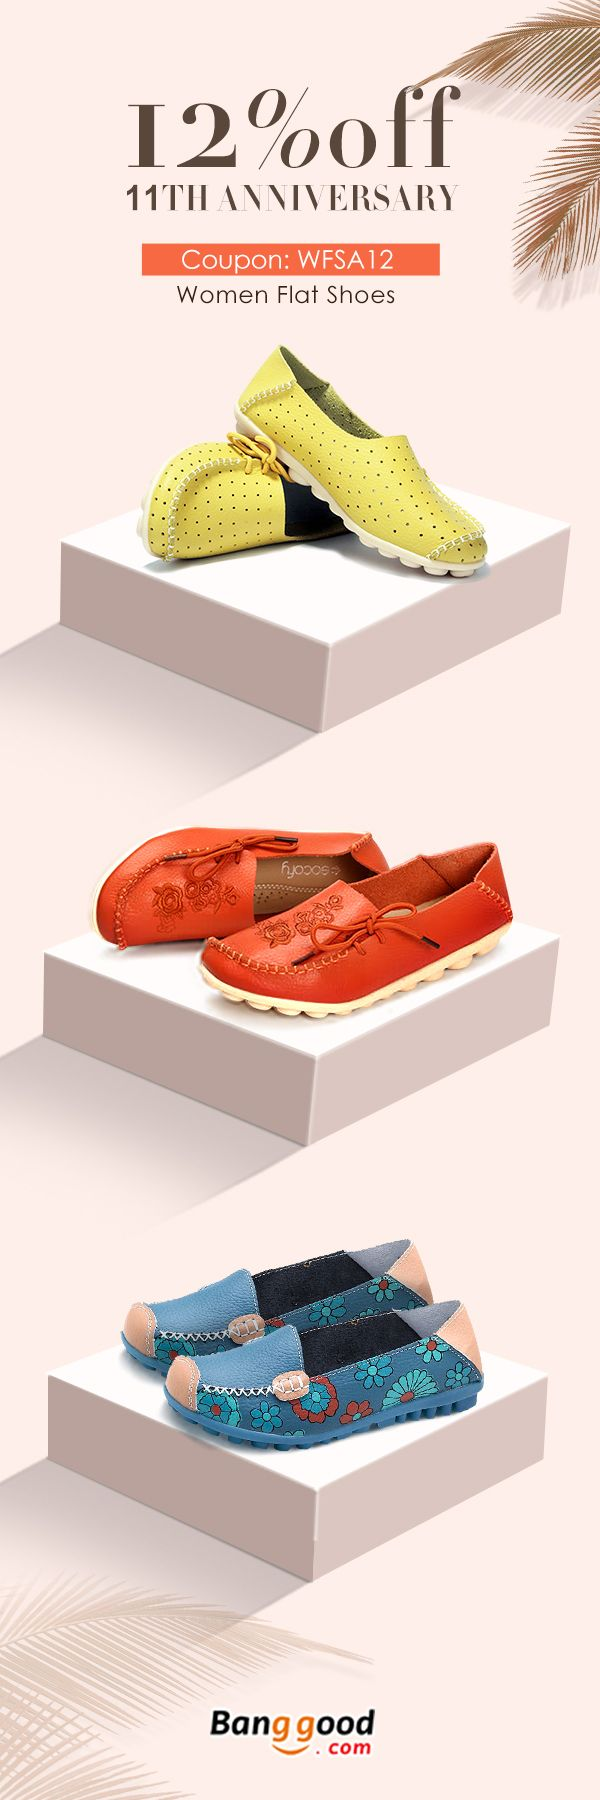 Women Flat Shoes Collection, Start From $16.73, up to 12% OFF. Fall in love with trendy style! Women's Jewelry, Women's Earrings, Women's Fashion, Christmas Accessories.